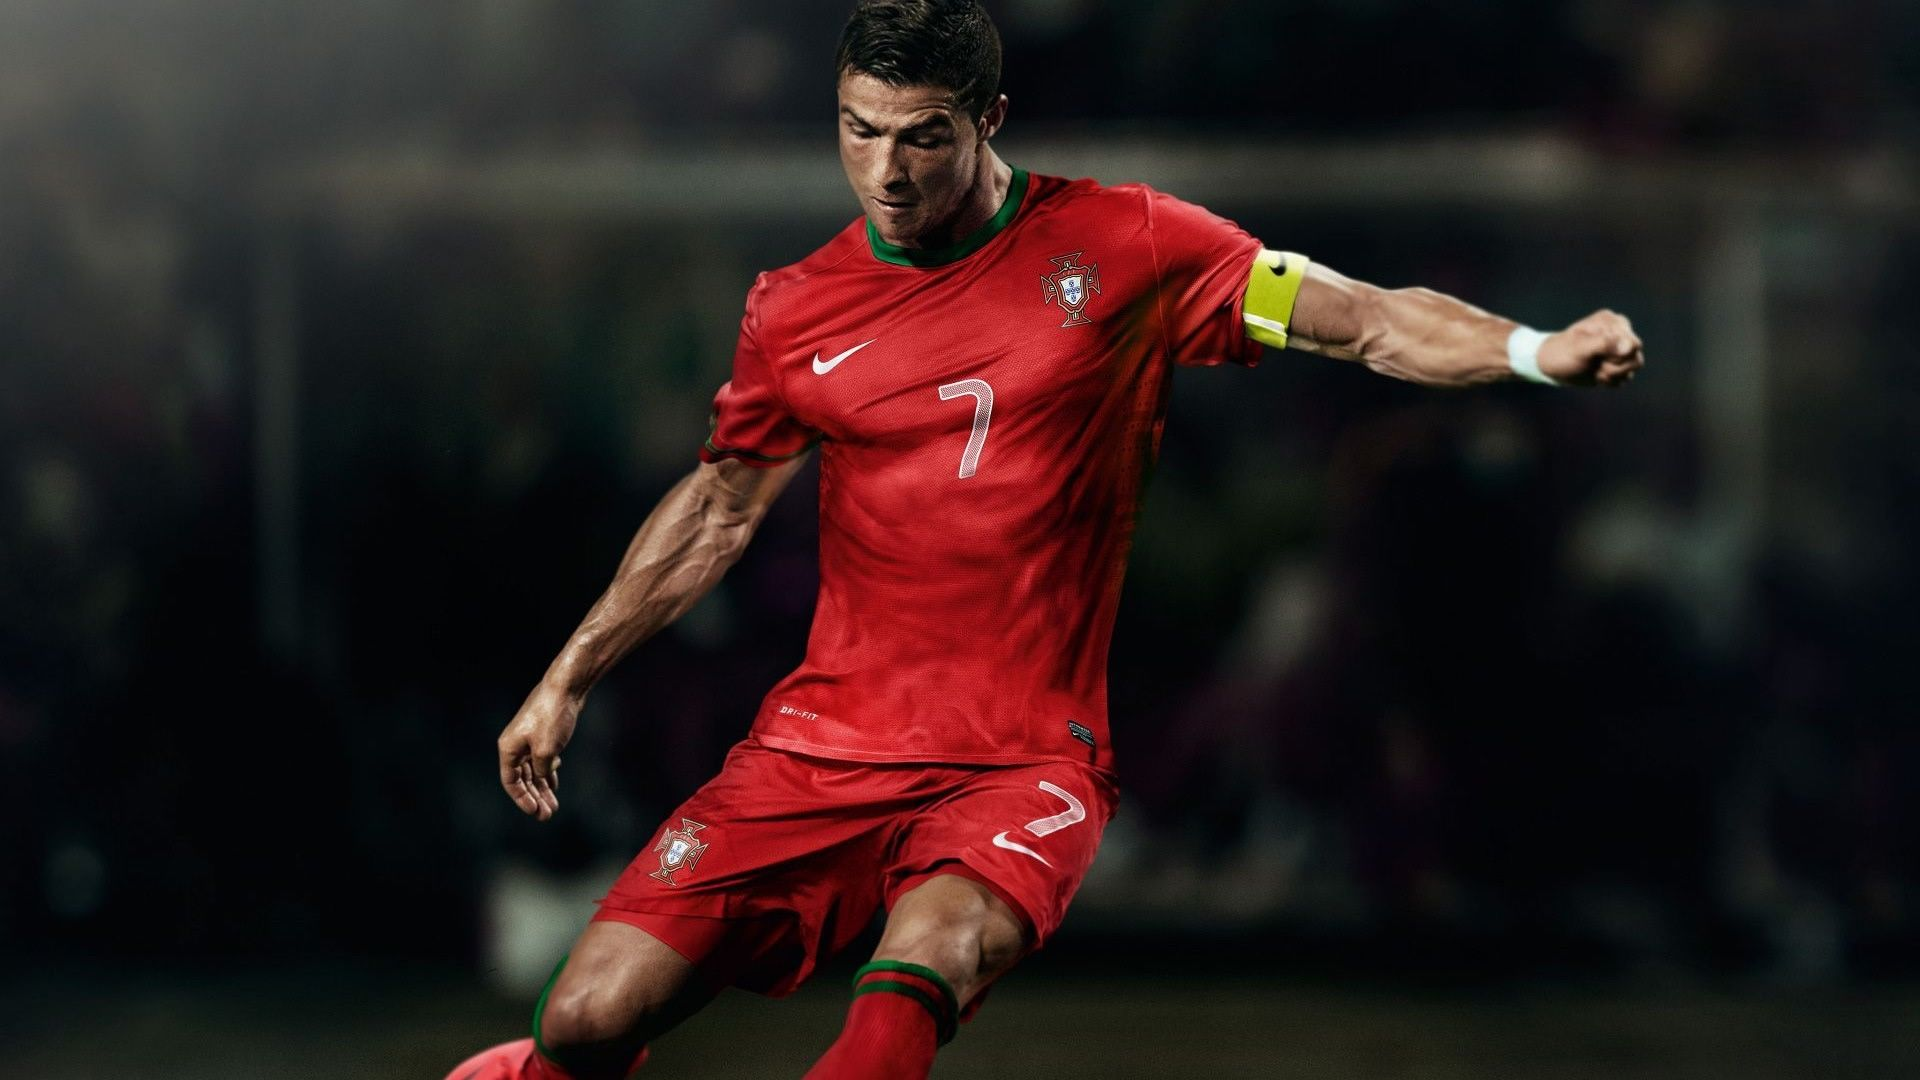 download free hd p wallpapers of cristiano ronaldo | hd wallpapers